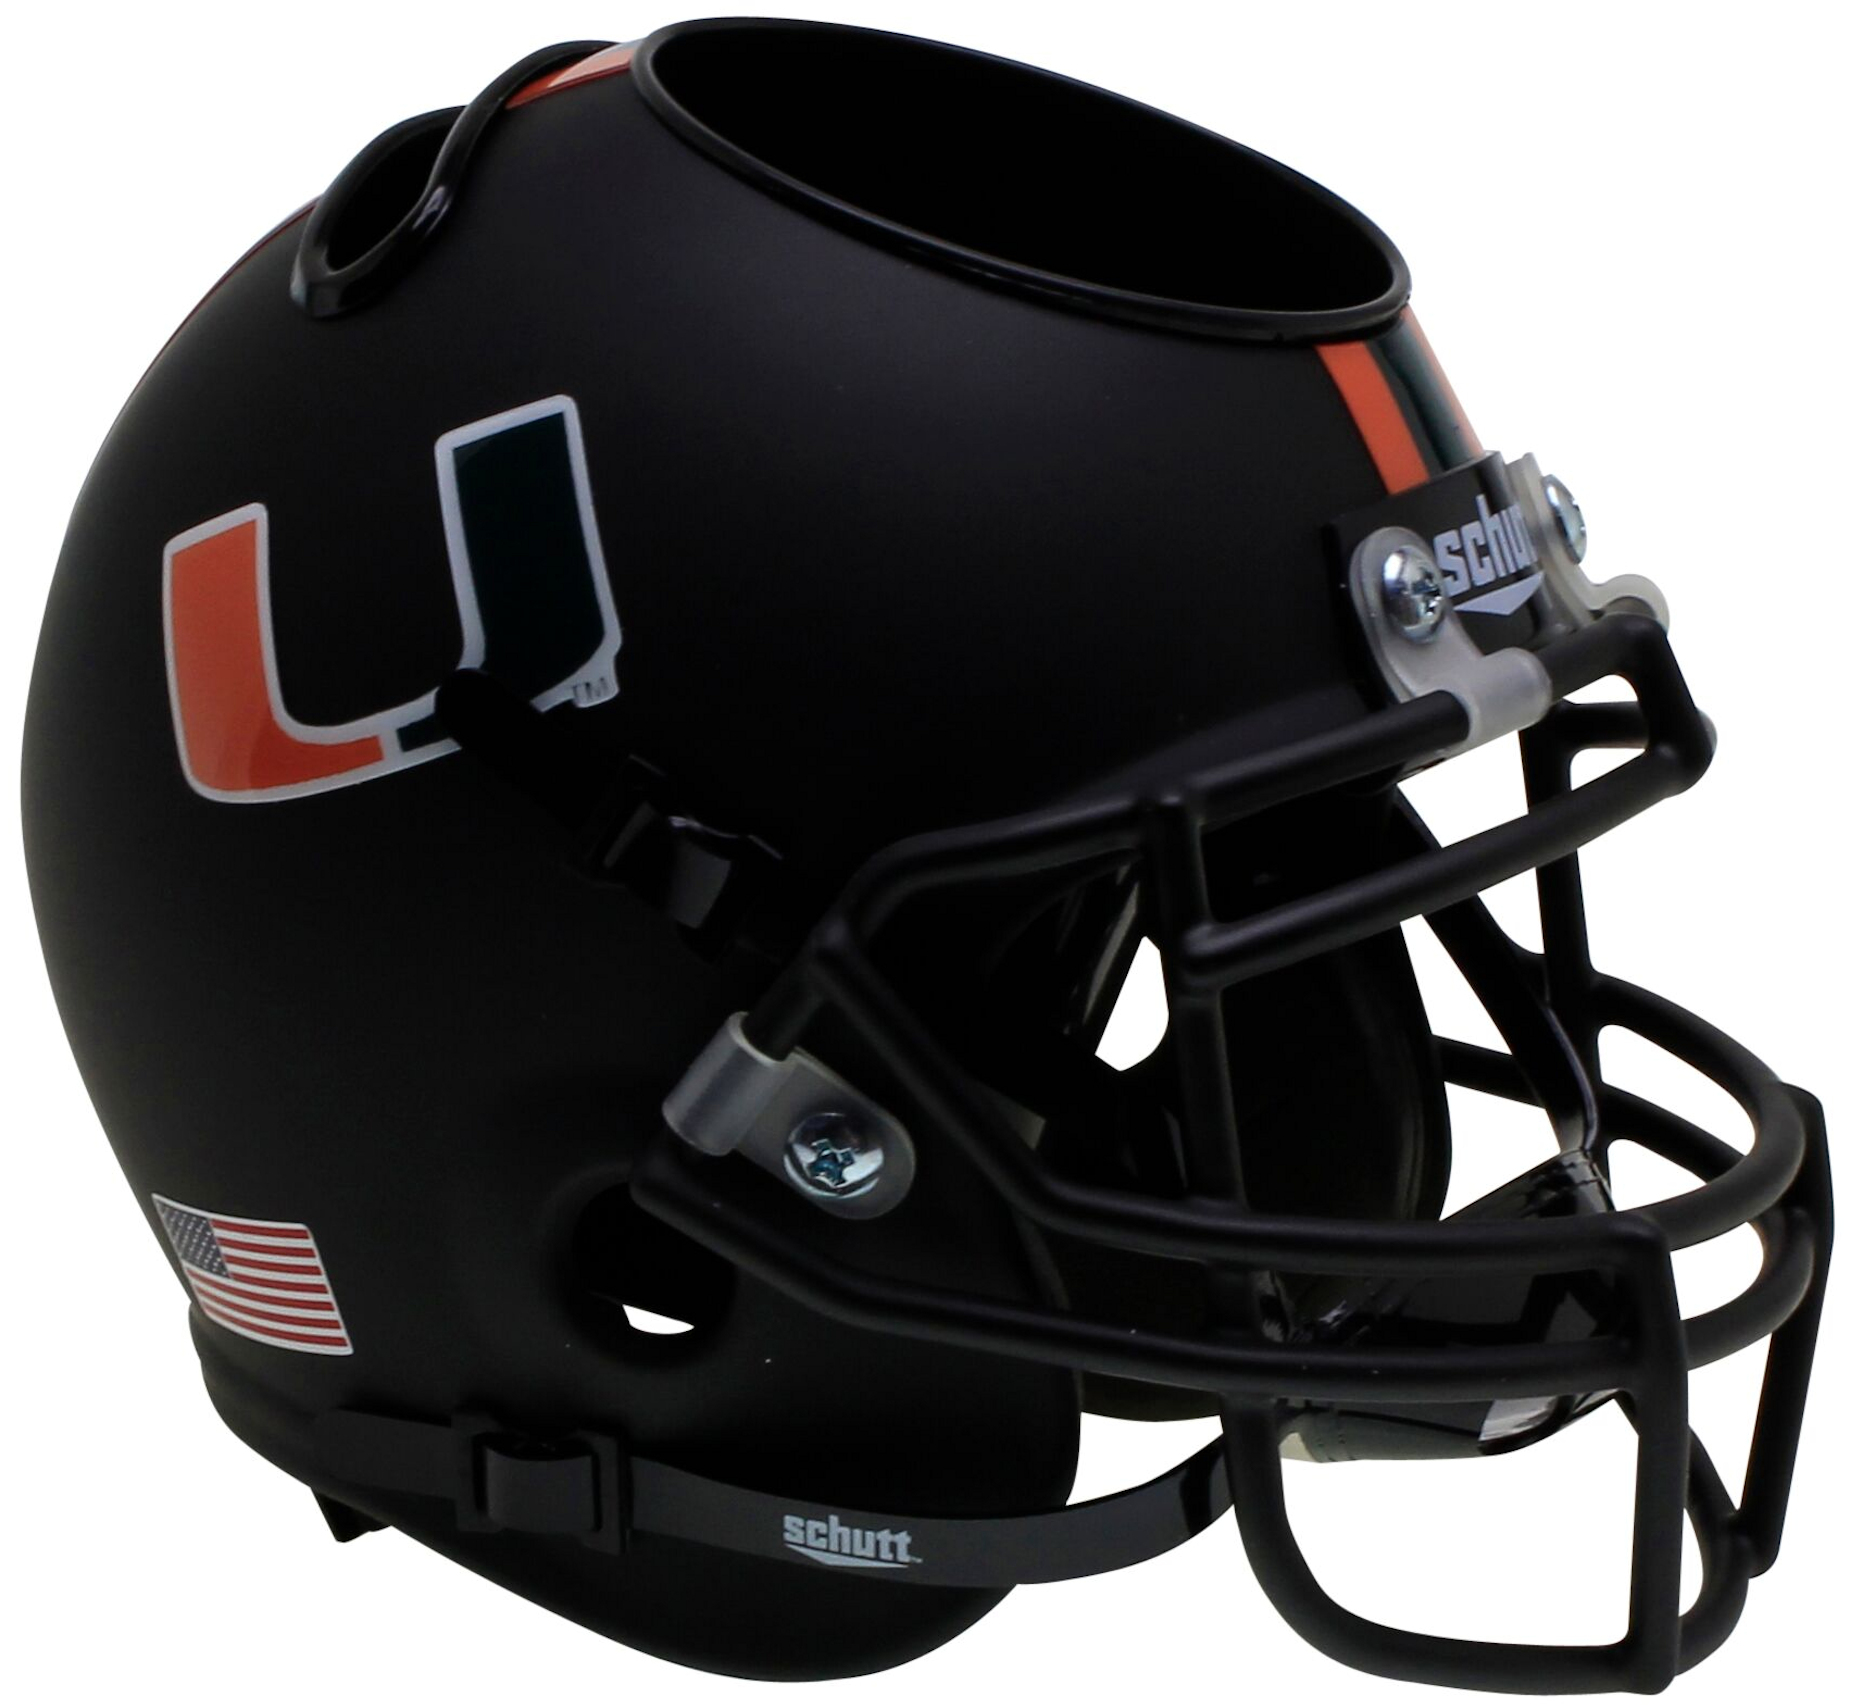 Miami Hurricanes Miniature Football Helmet Desk Caddy <B>Matte Black</B>